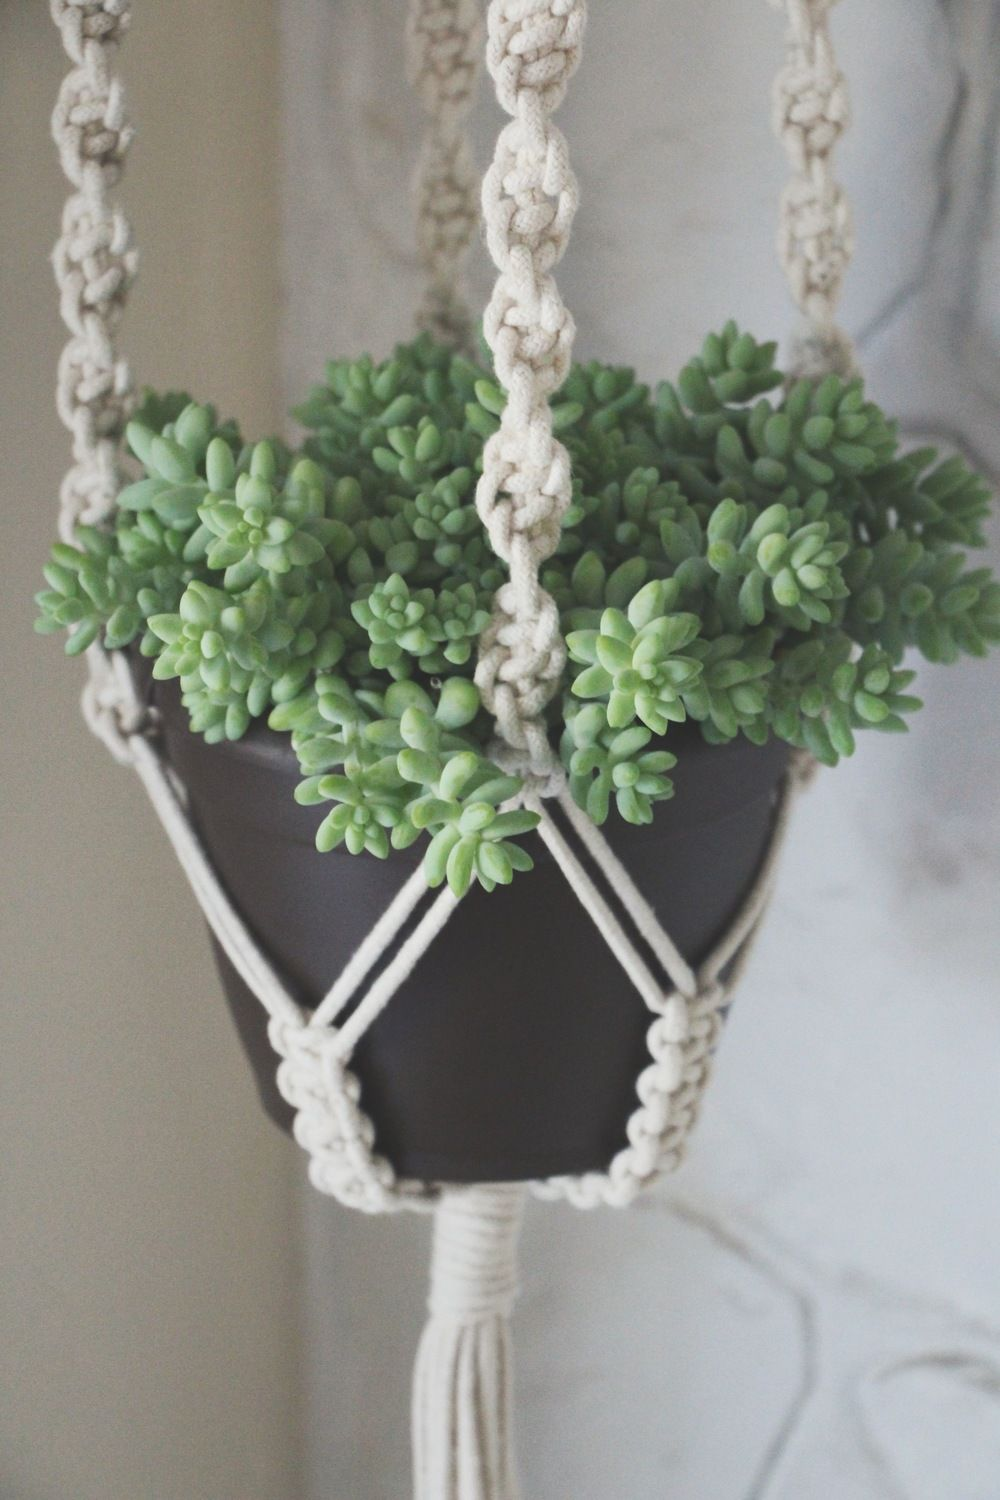 Our First Giveaway Crafty Lady Macrame Plant Hanger